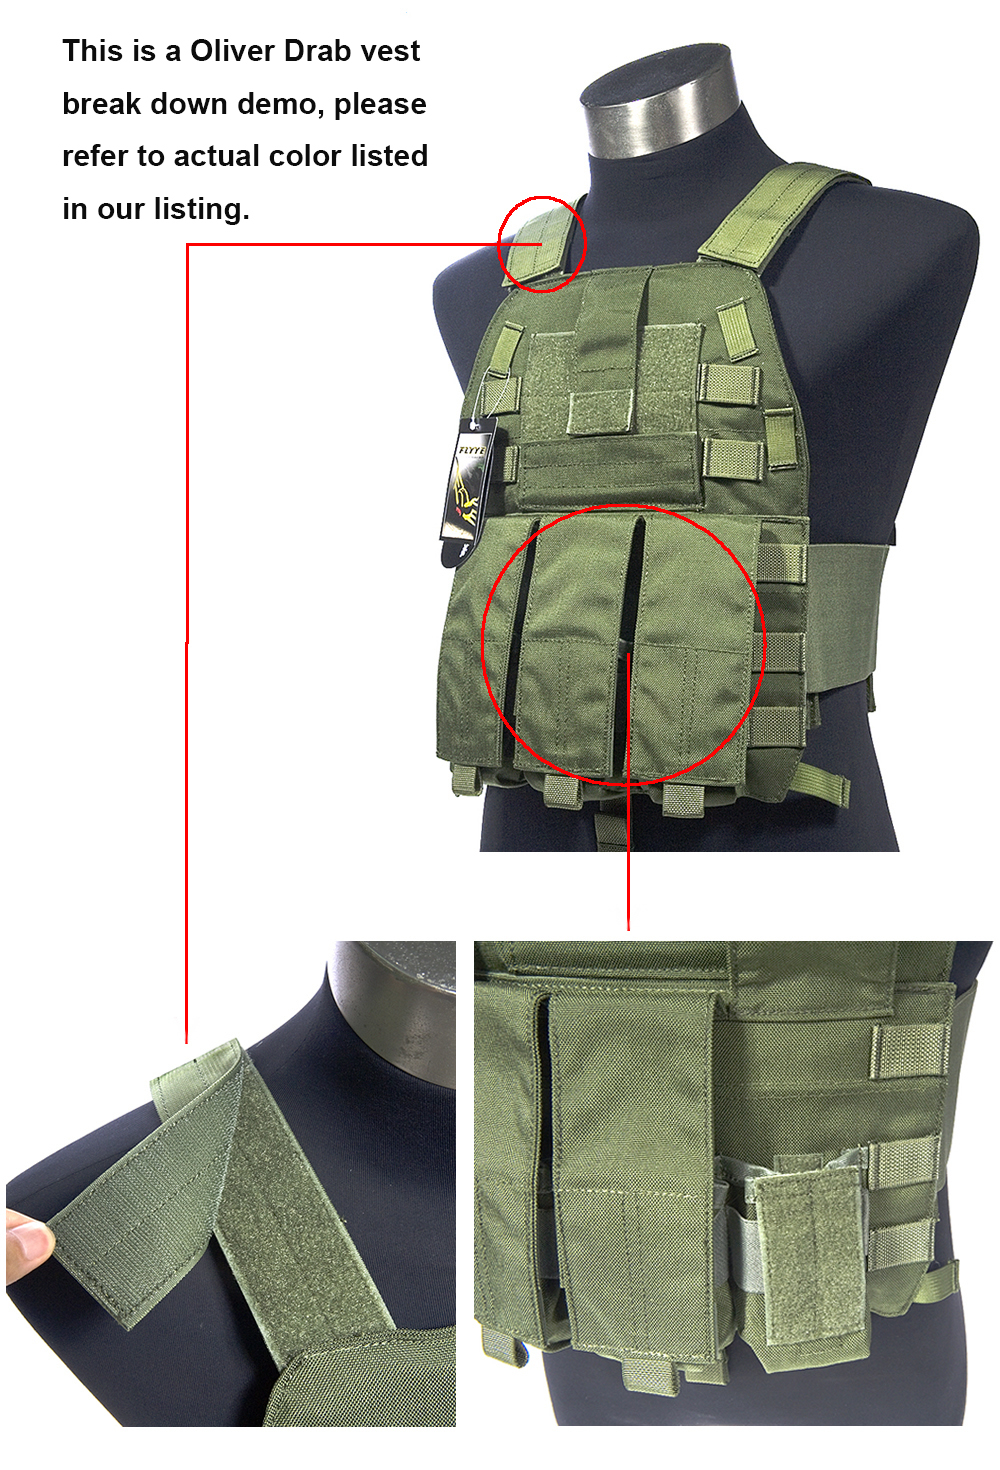 Mil Spec Military LT6094K Oliver Drab OD Plate Carrier Combat Molle Tactical Vest  Army Military Combat Vests & Gear Carrier  цена